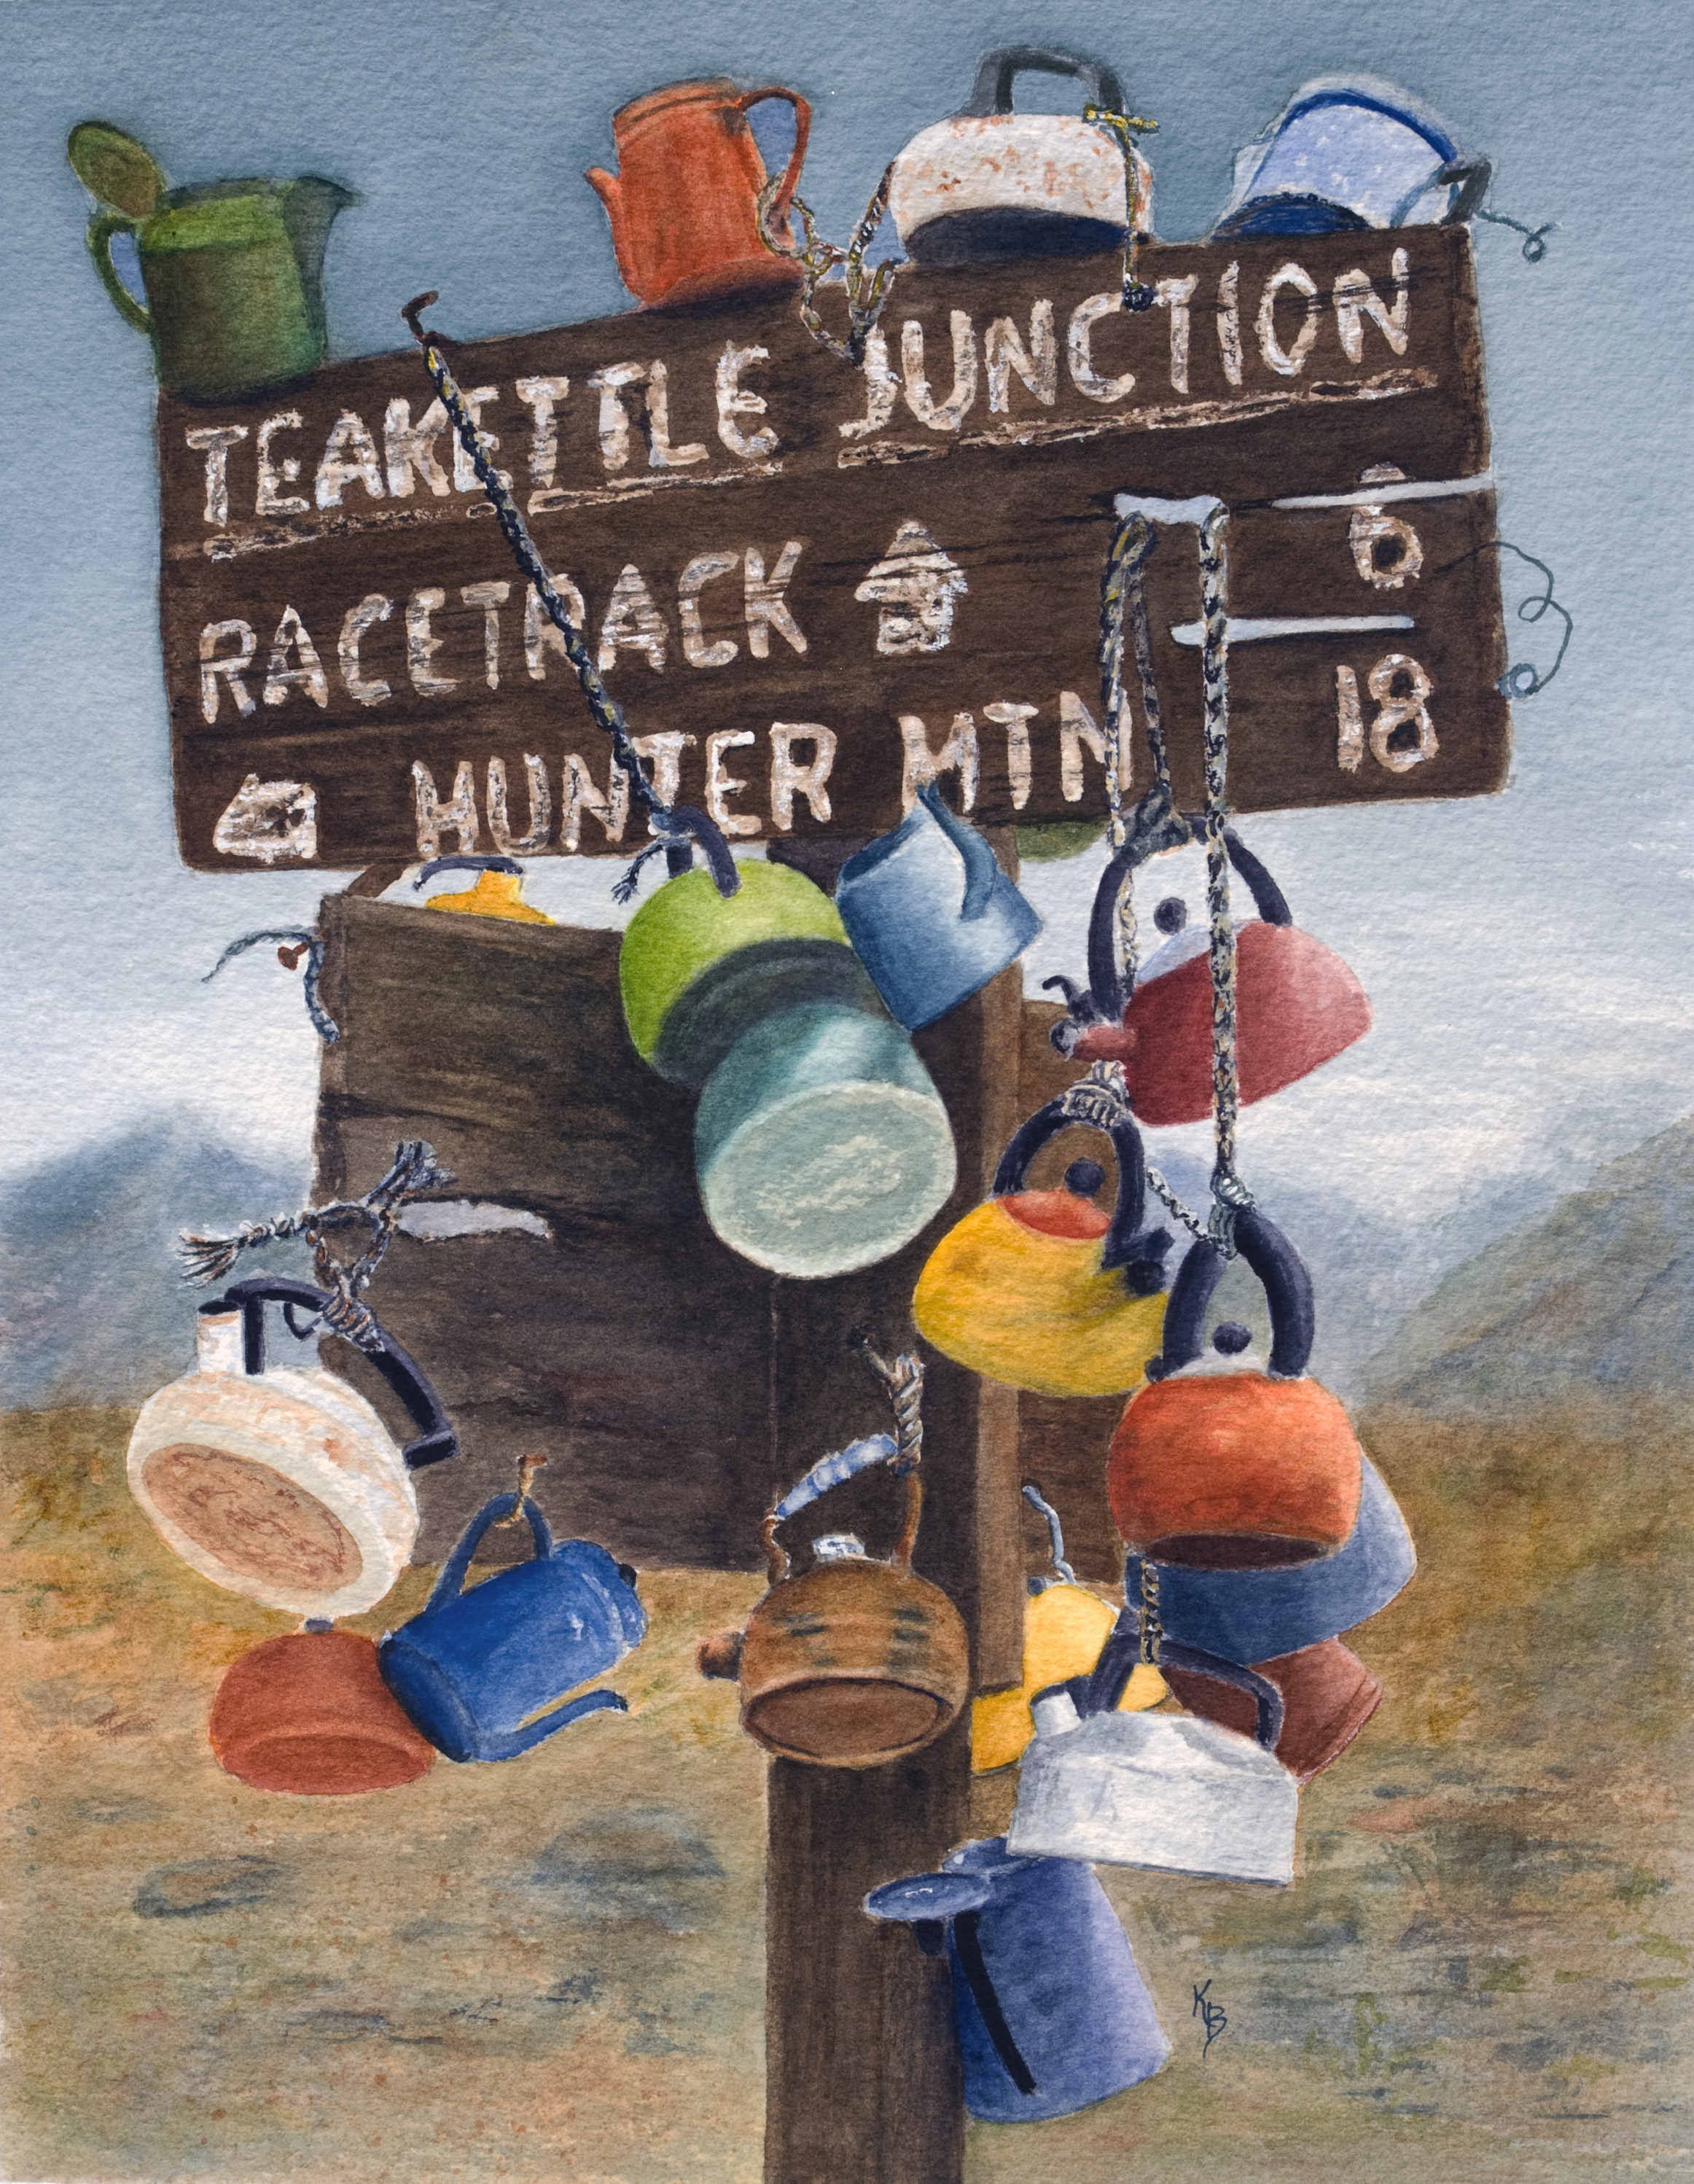 Teakettle Junction by Karen Flescher